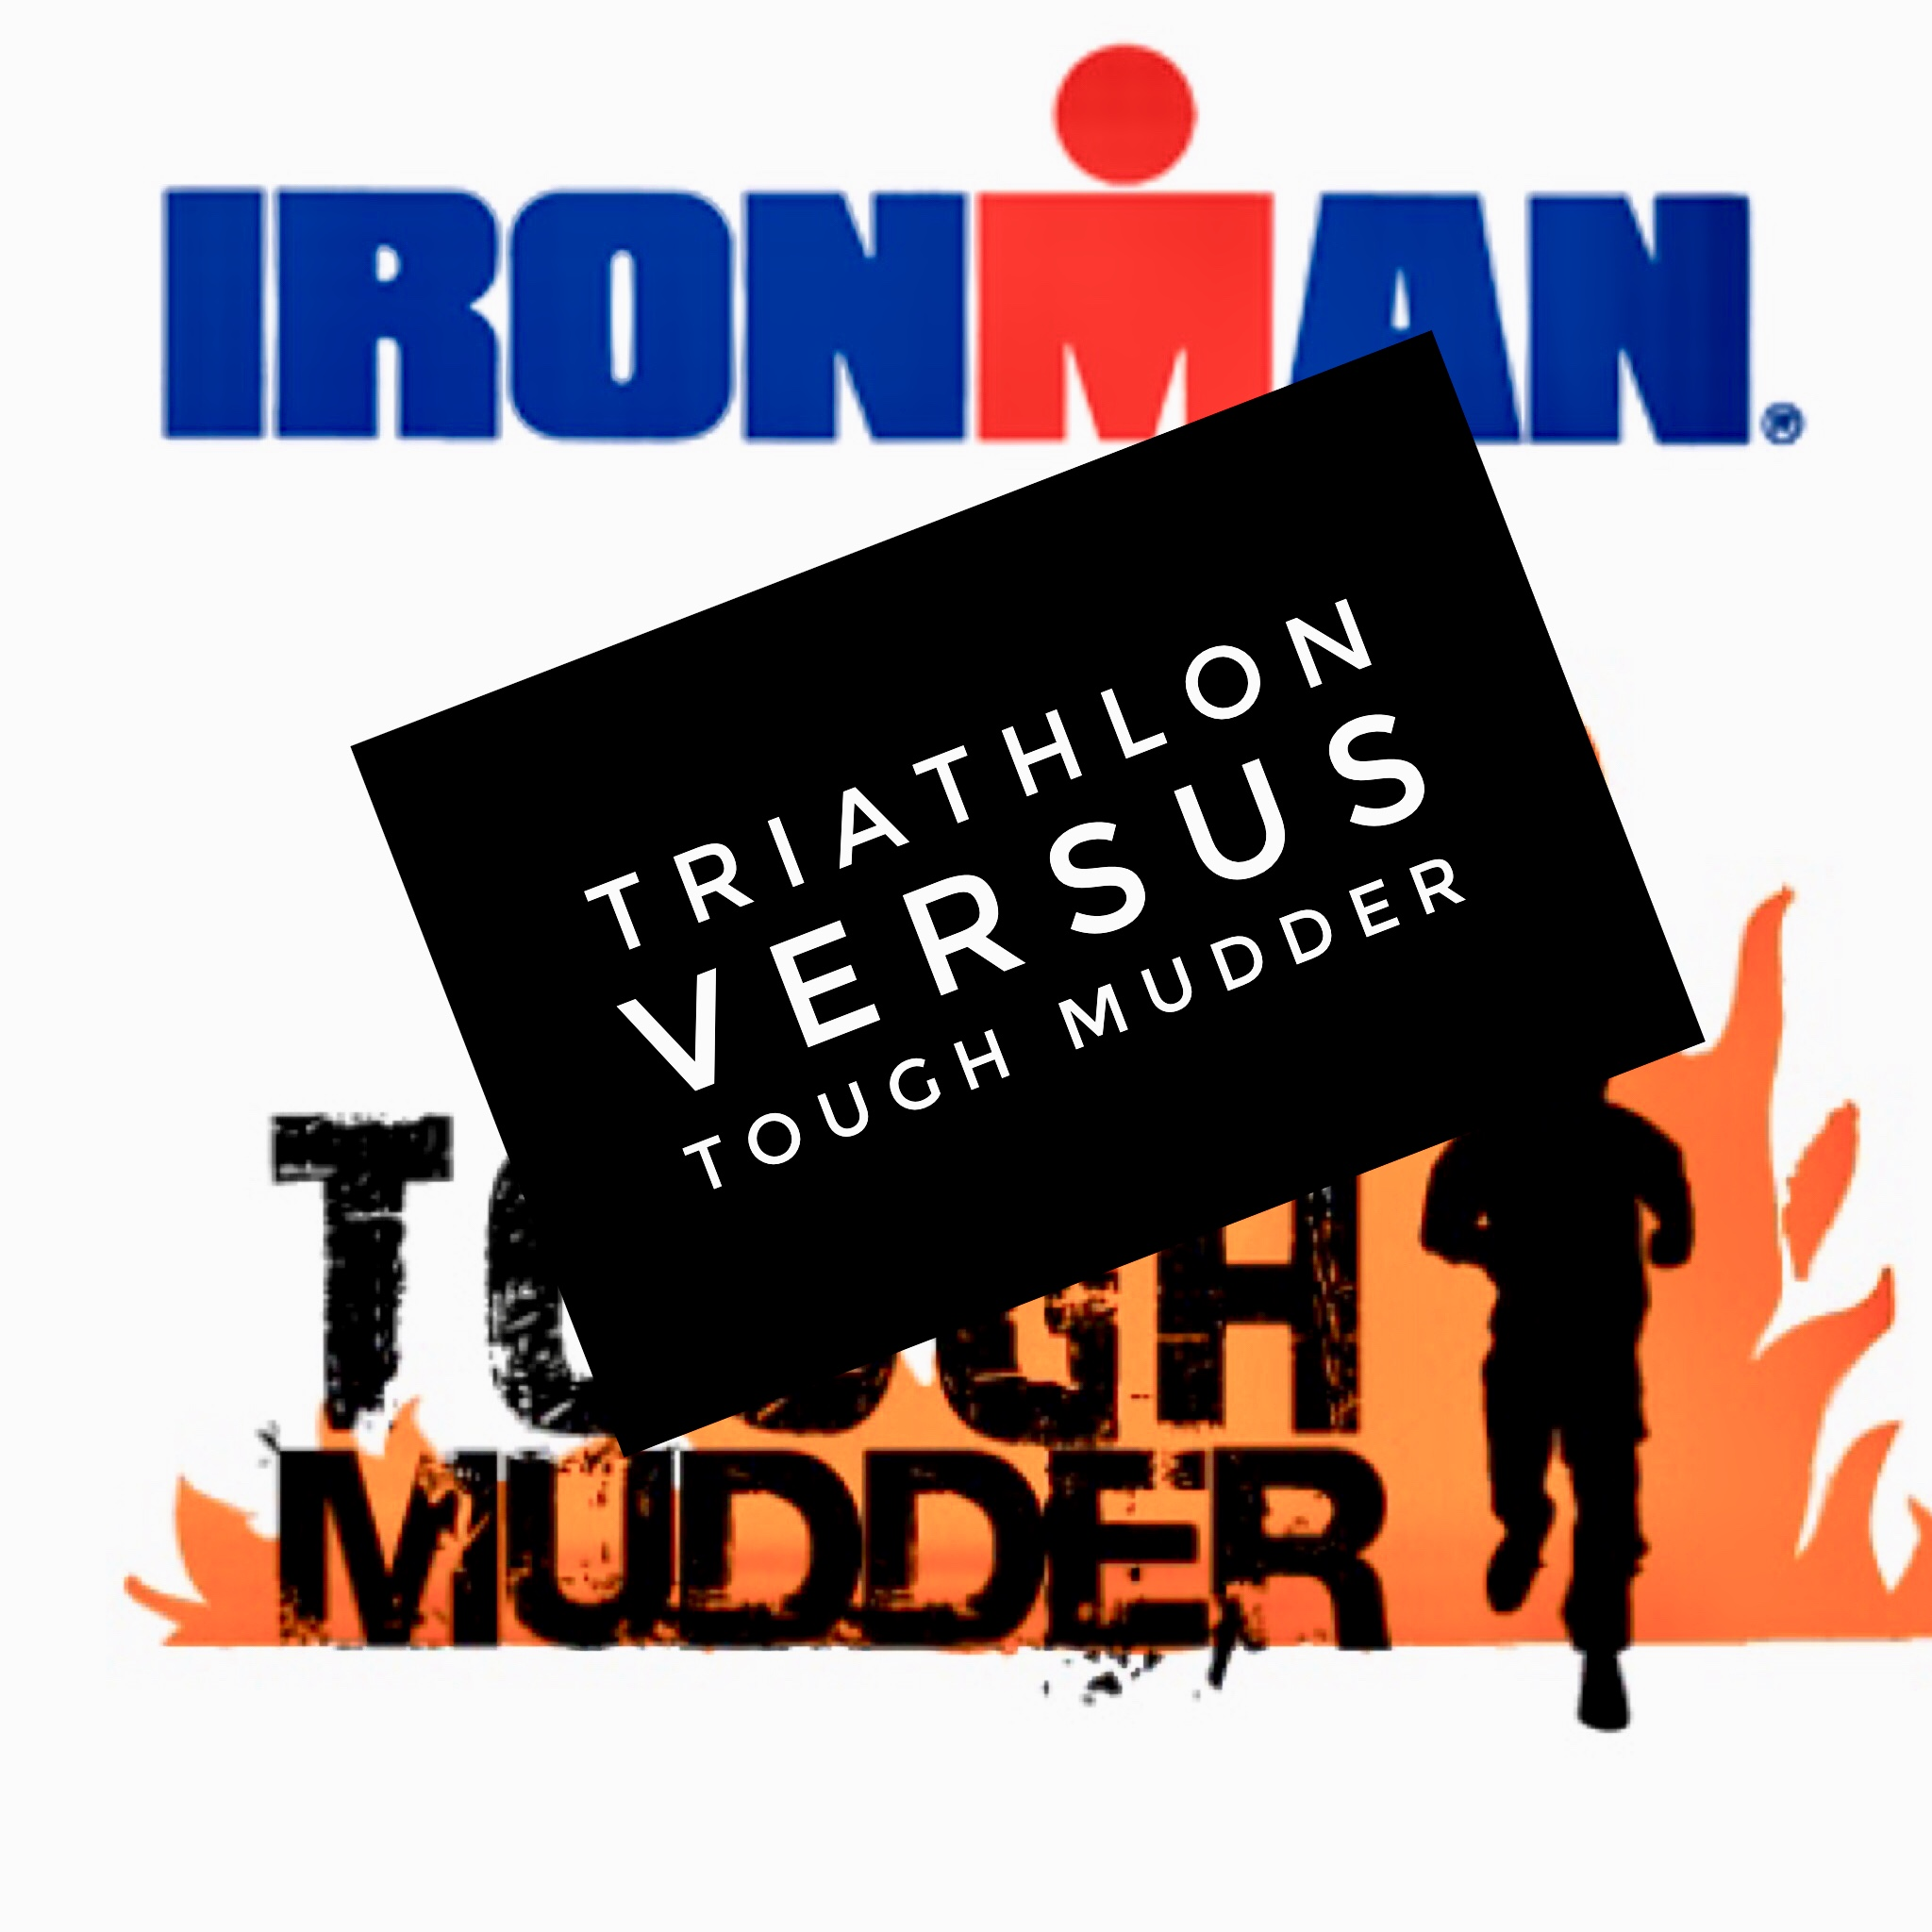 Triathlon versus tough mudder